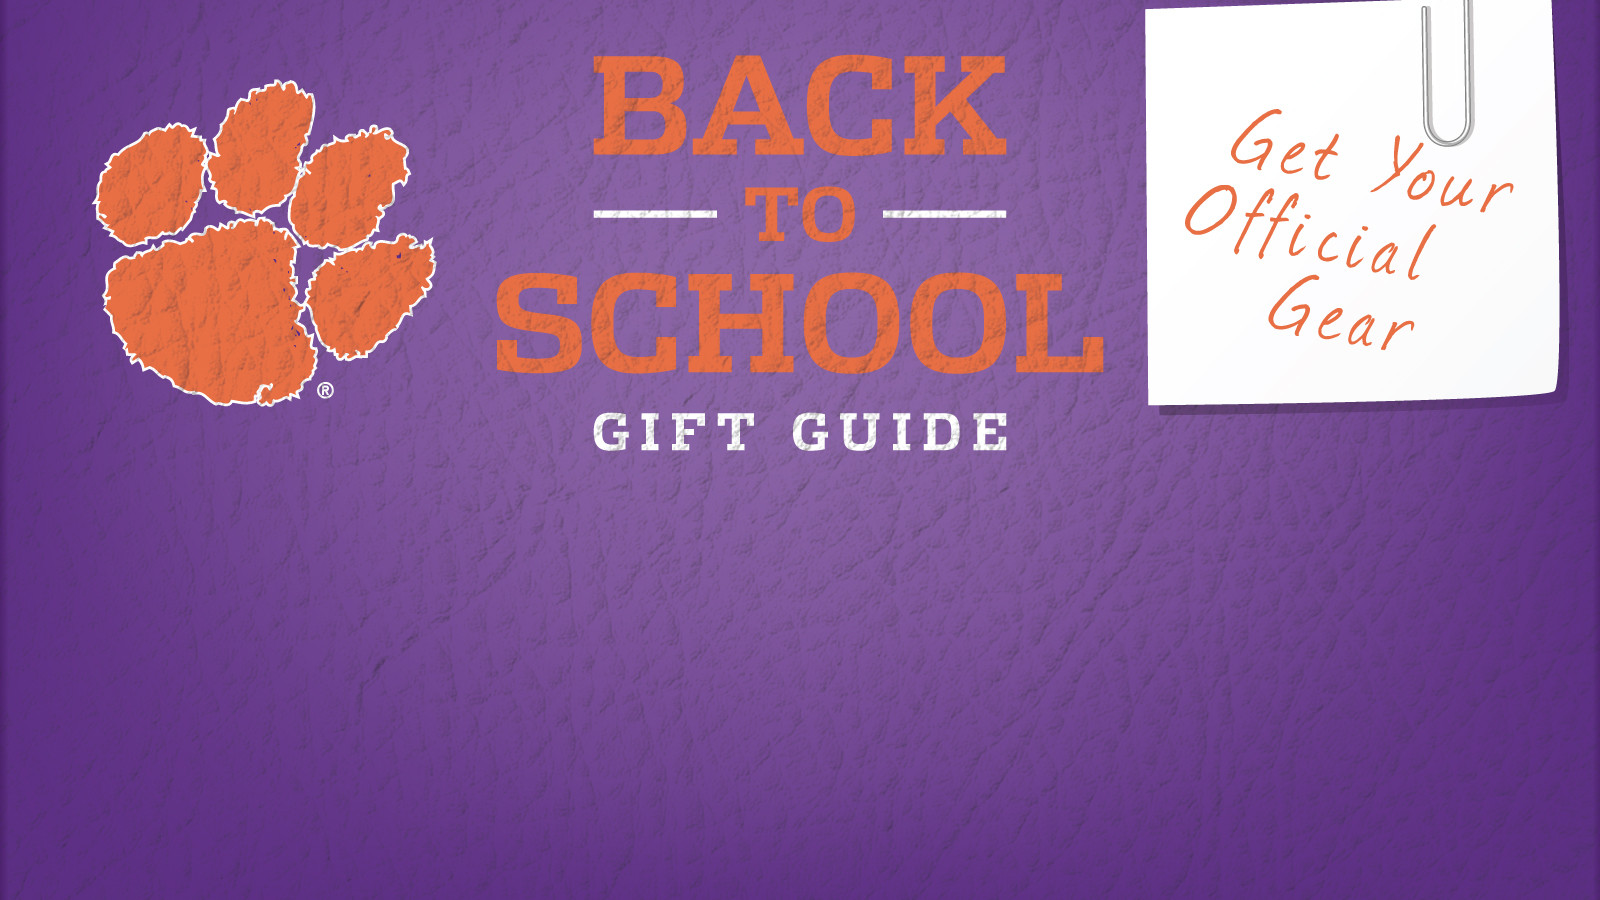 Shop Back to School Gift Guide at Clemson's Official Online Store